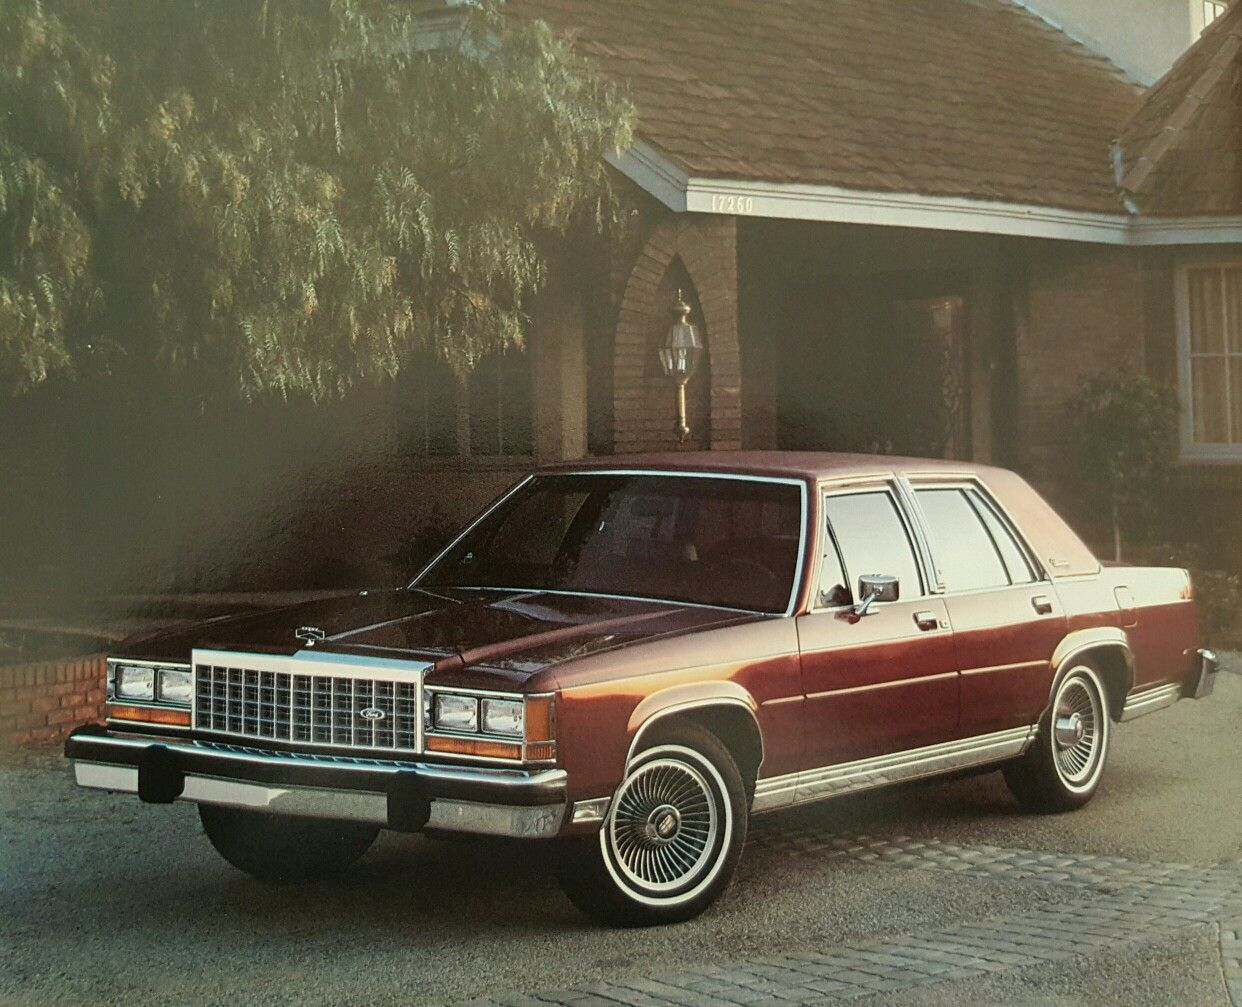 medium resolution of 1985 ford ltd crown victoria brougham